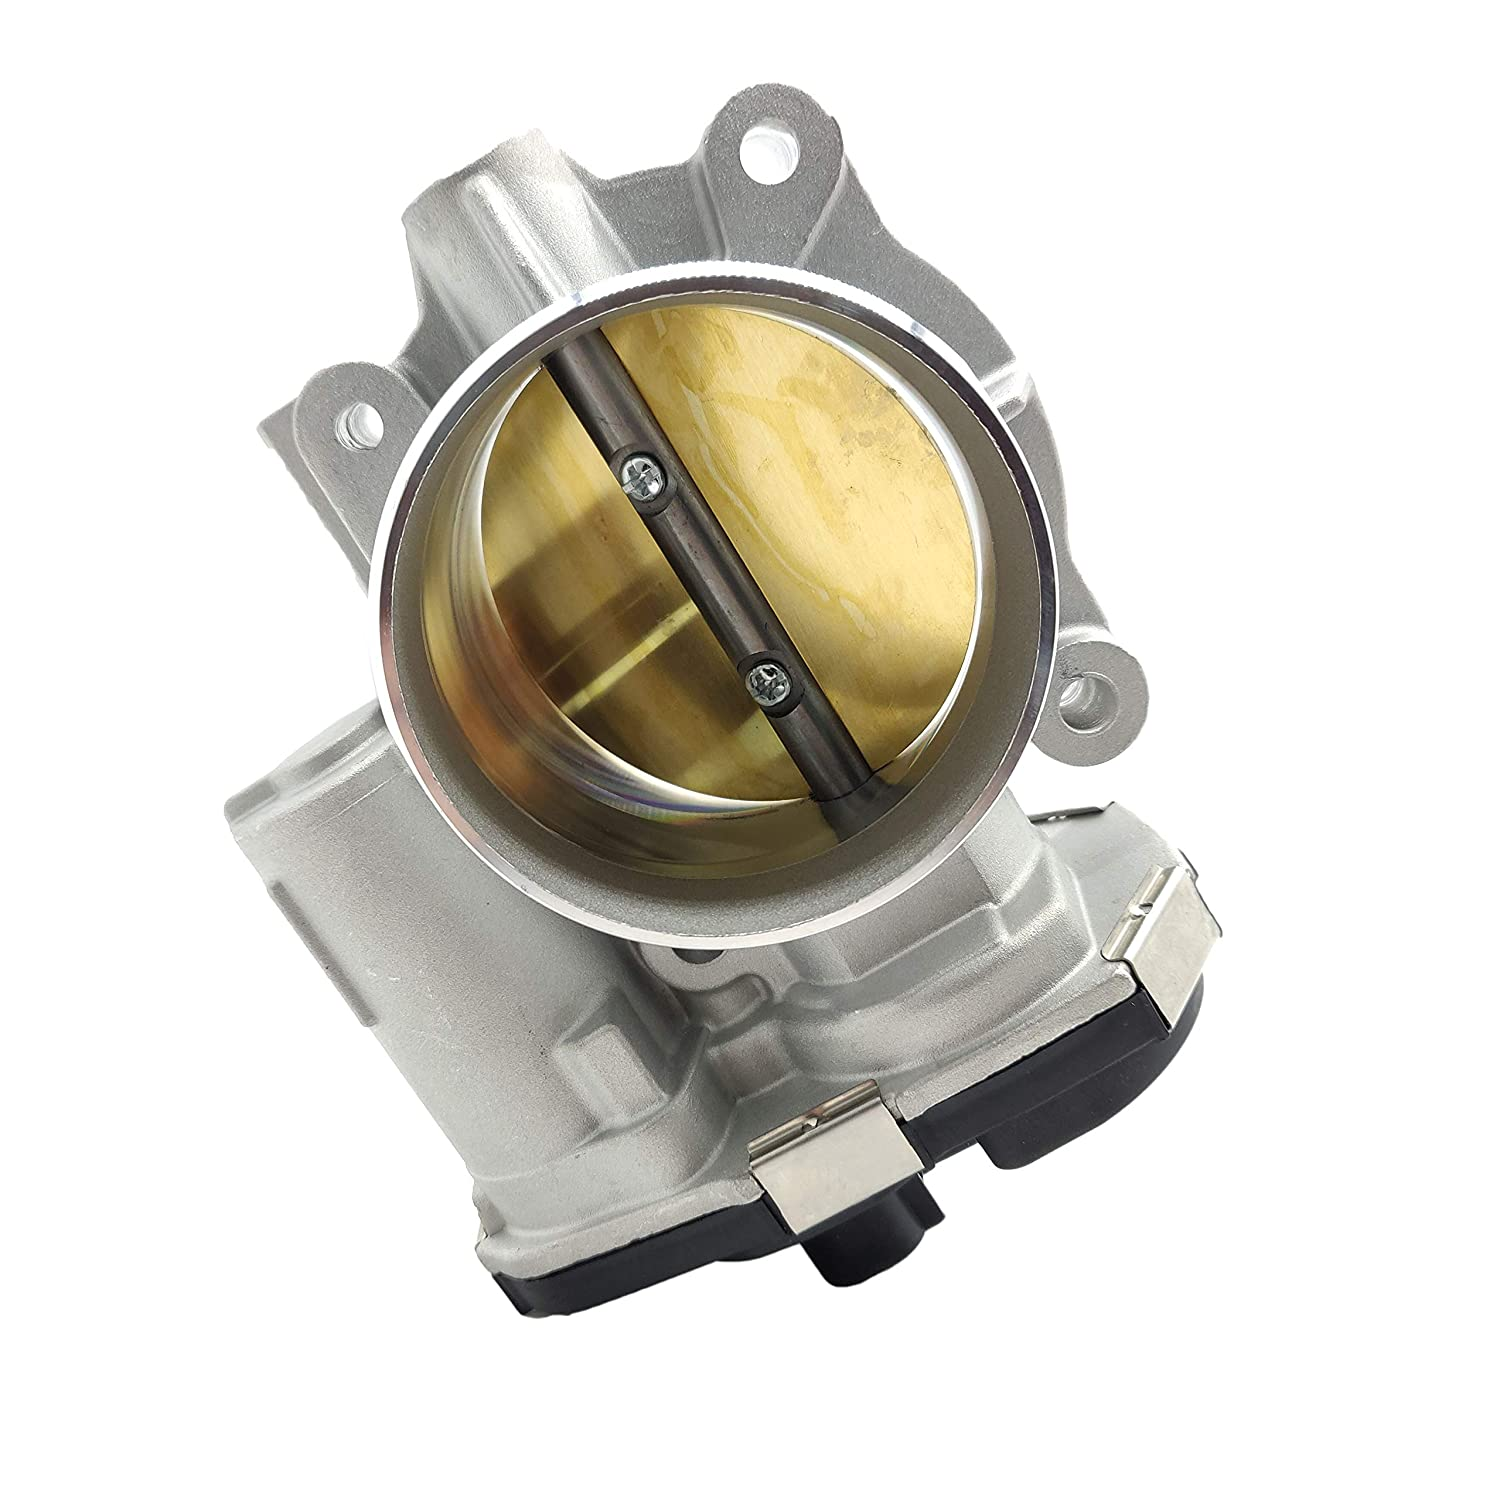 Fuel Injection Throttle Body for Buick Enclave Chevrolet Equinox Traverse GMC Acadia Saturn Outlook Vue 3.6L V6